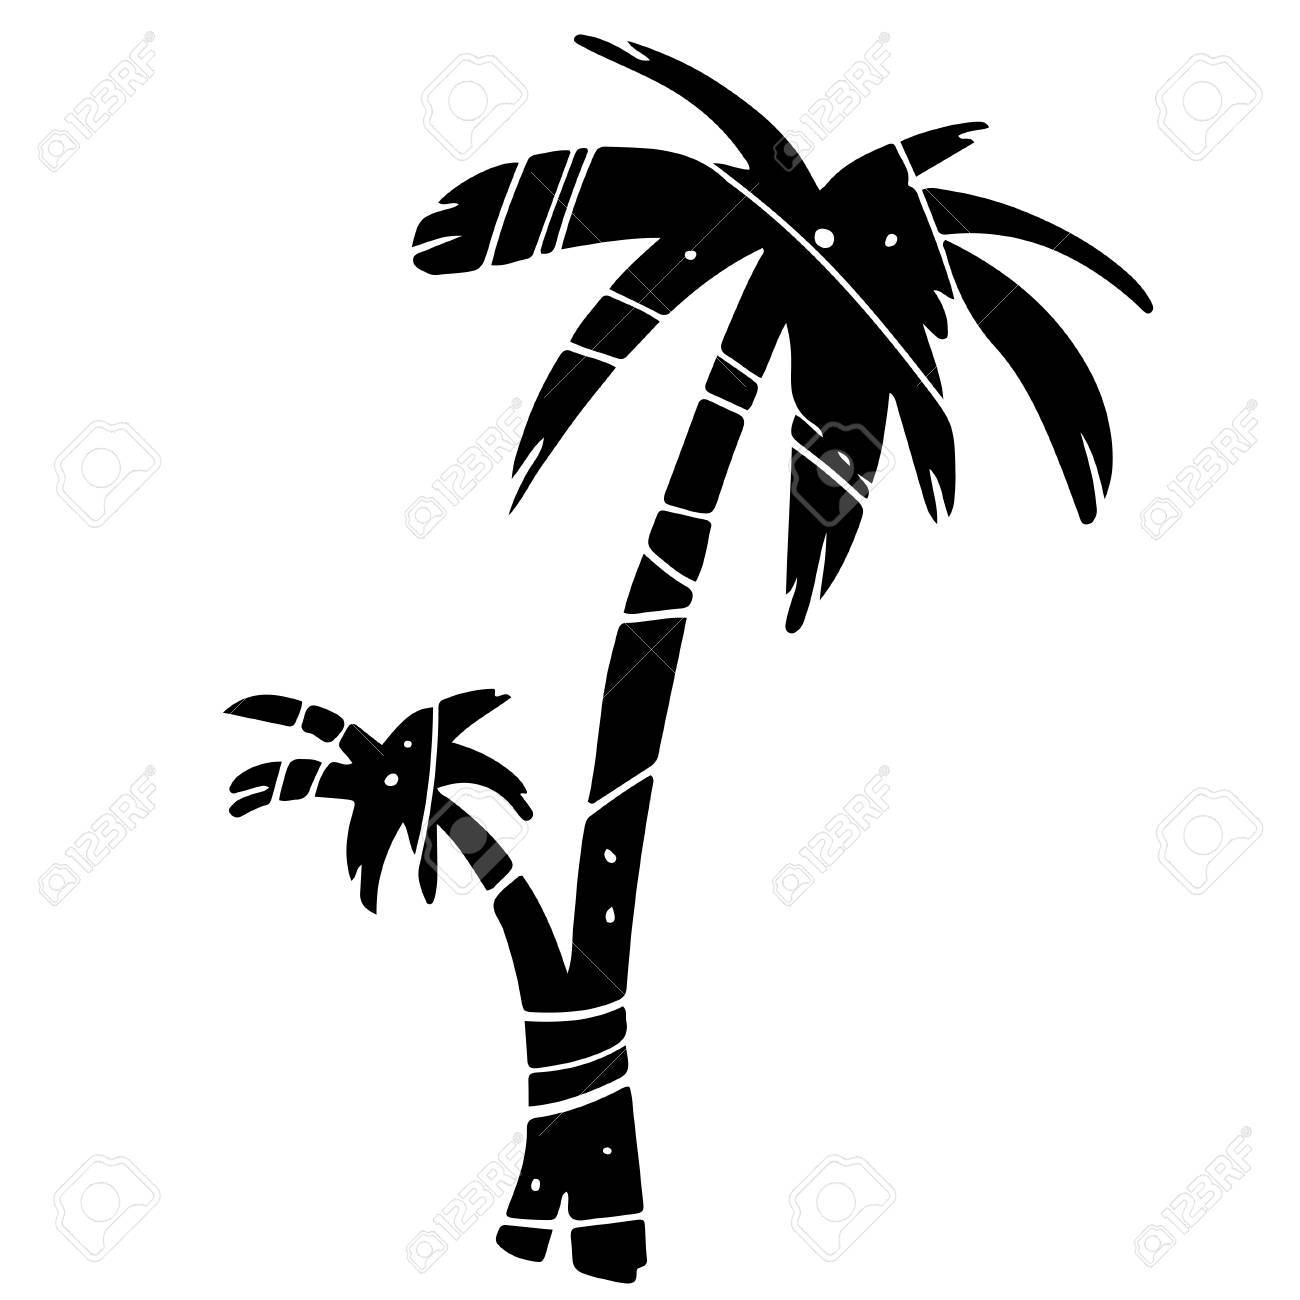 Coconut Palm Tree Black Silhouette Isolated On A White Background Royalty Free Cliparts Vectors And Stock Illustration Image 99155732